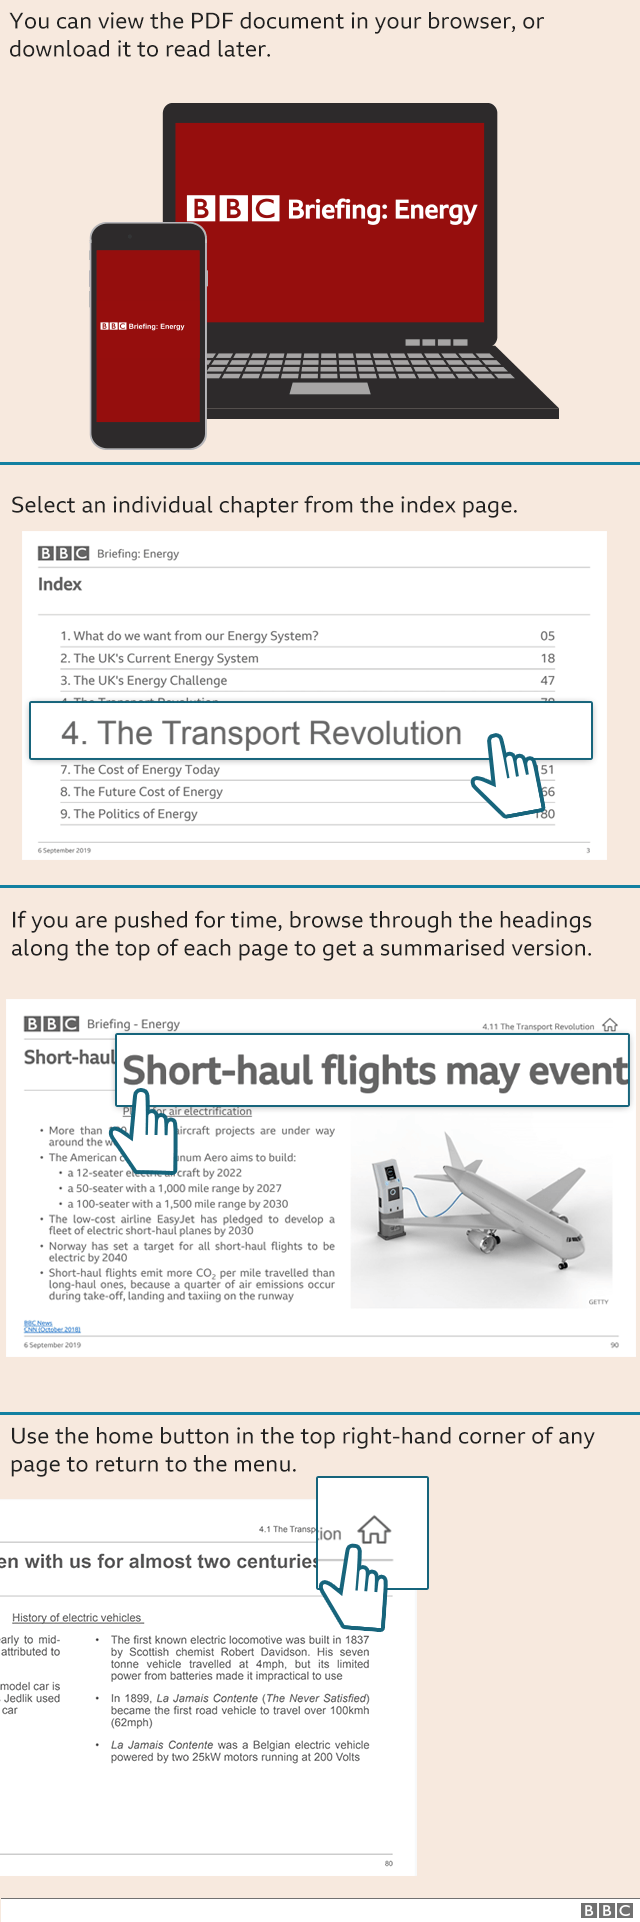 Instructions on how to navigate the BBC Briefing PDF document